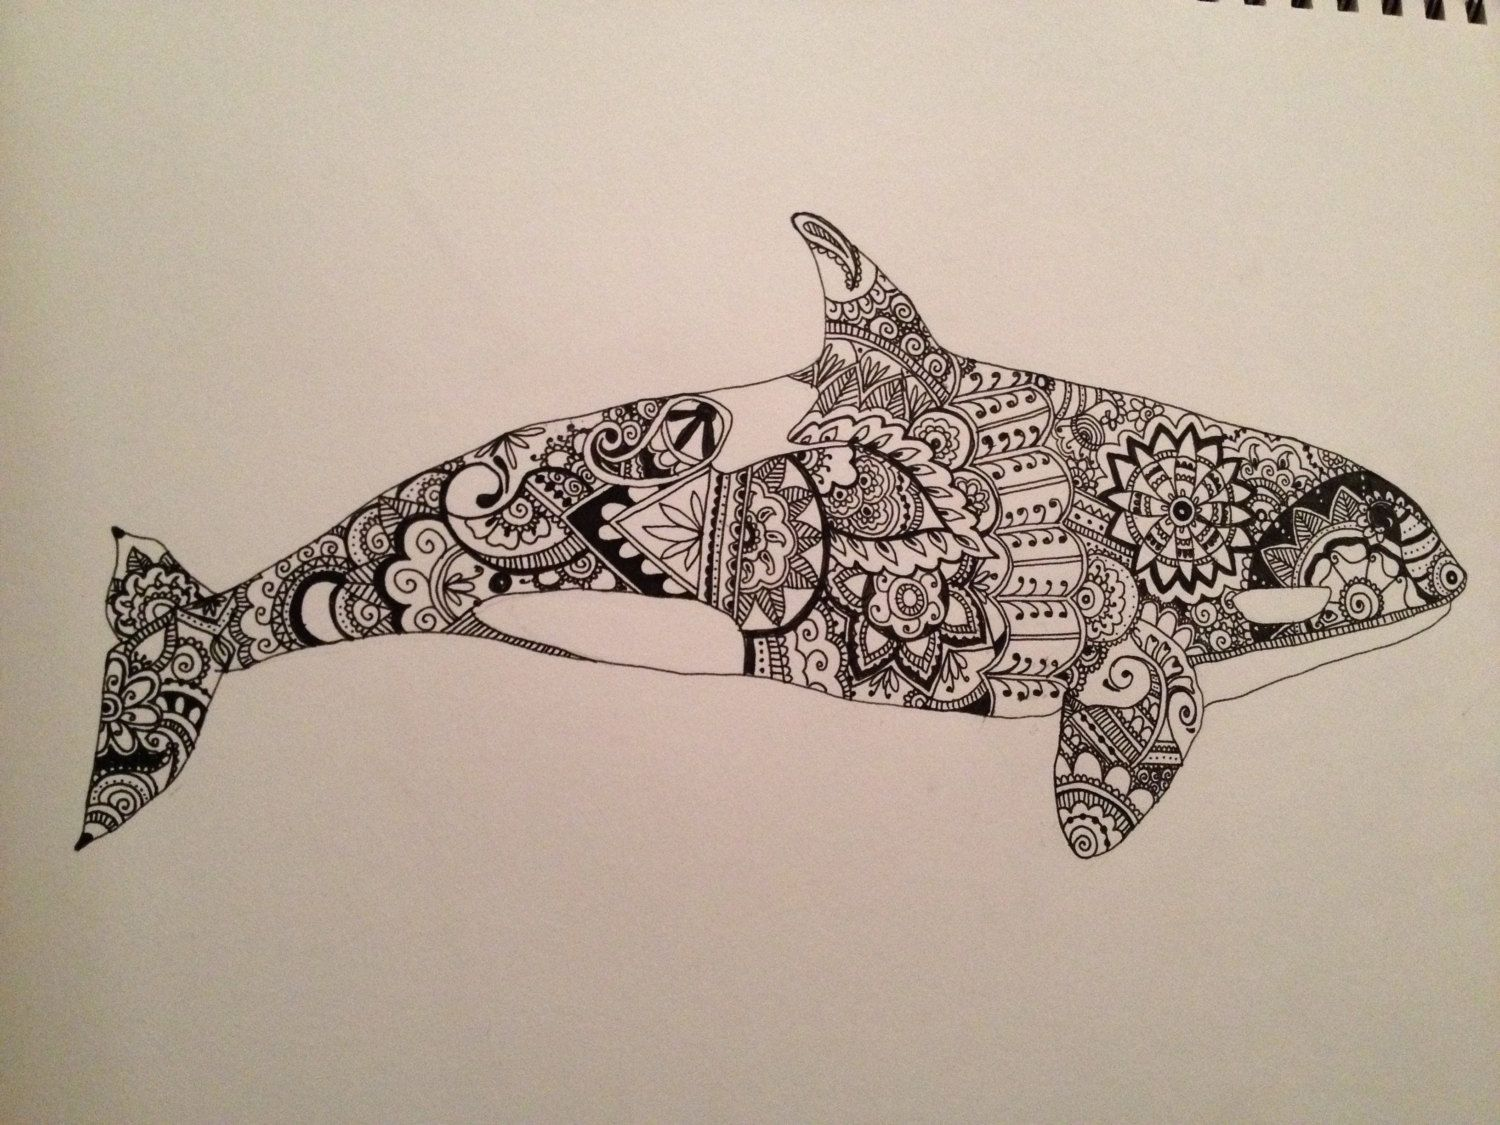 Hand drawn Illustration of Orca / Killer Whale Featuring Henna ...